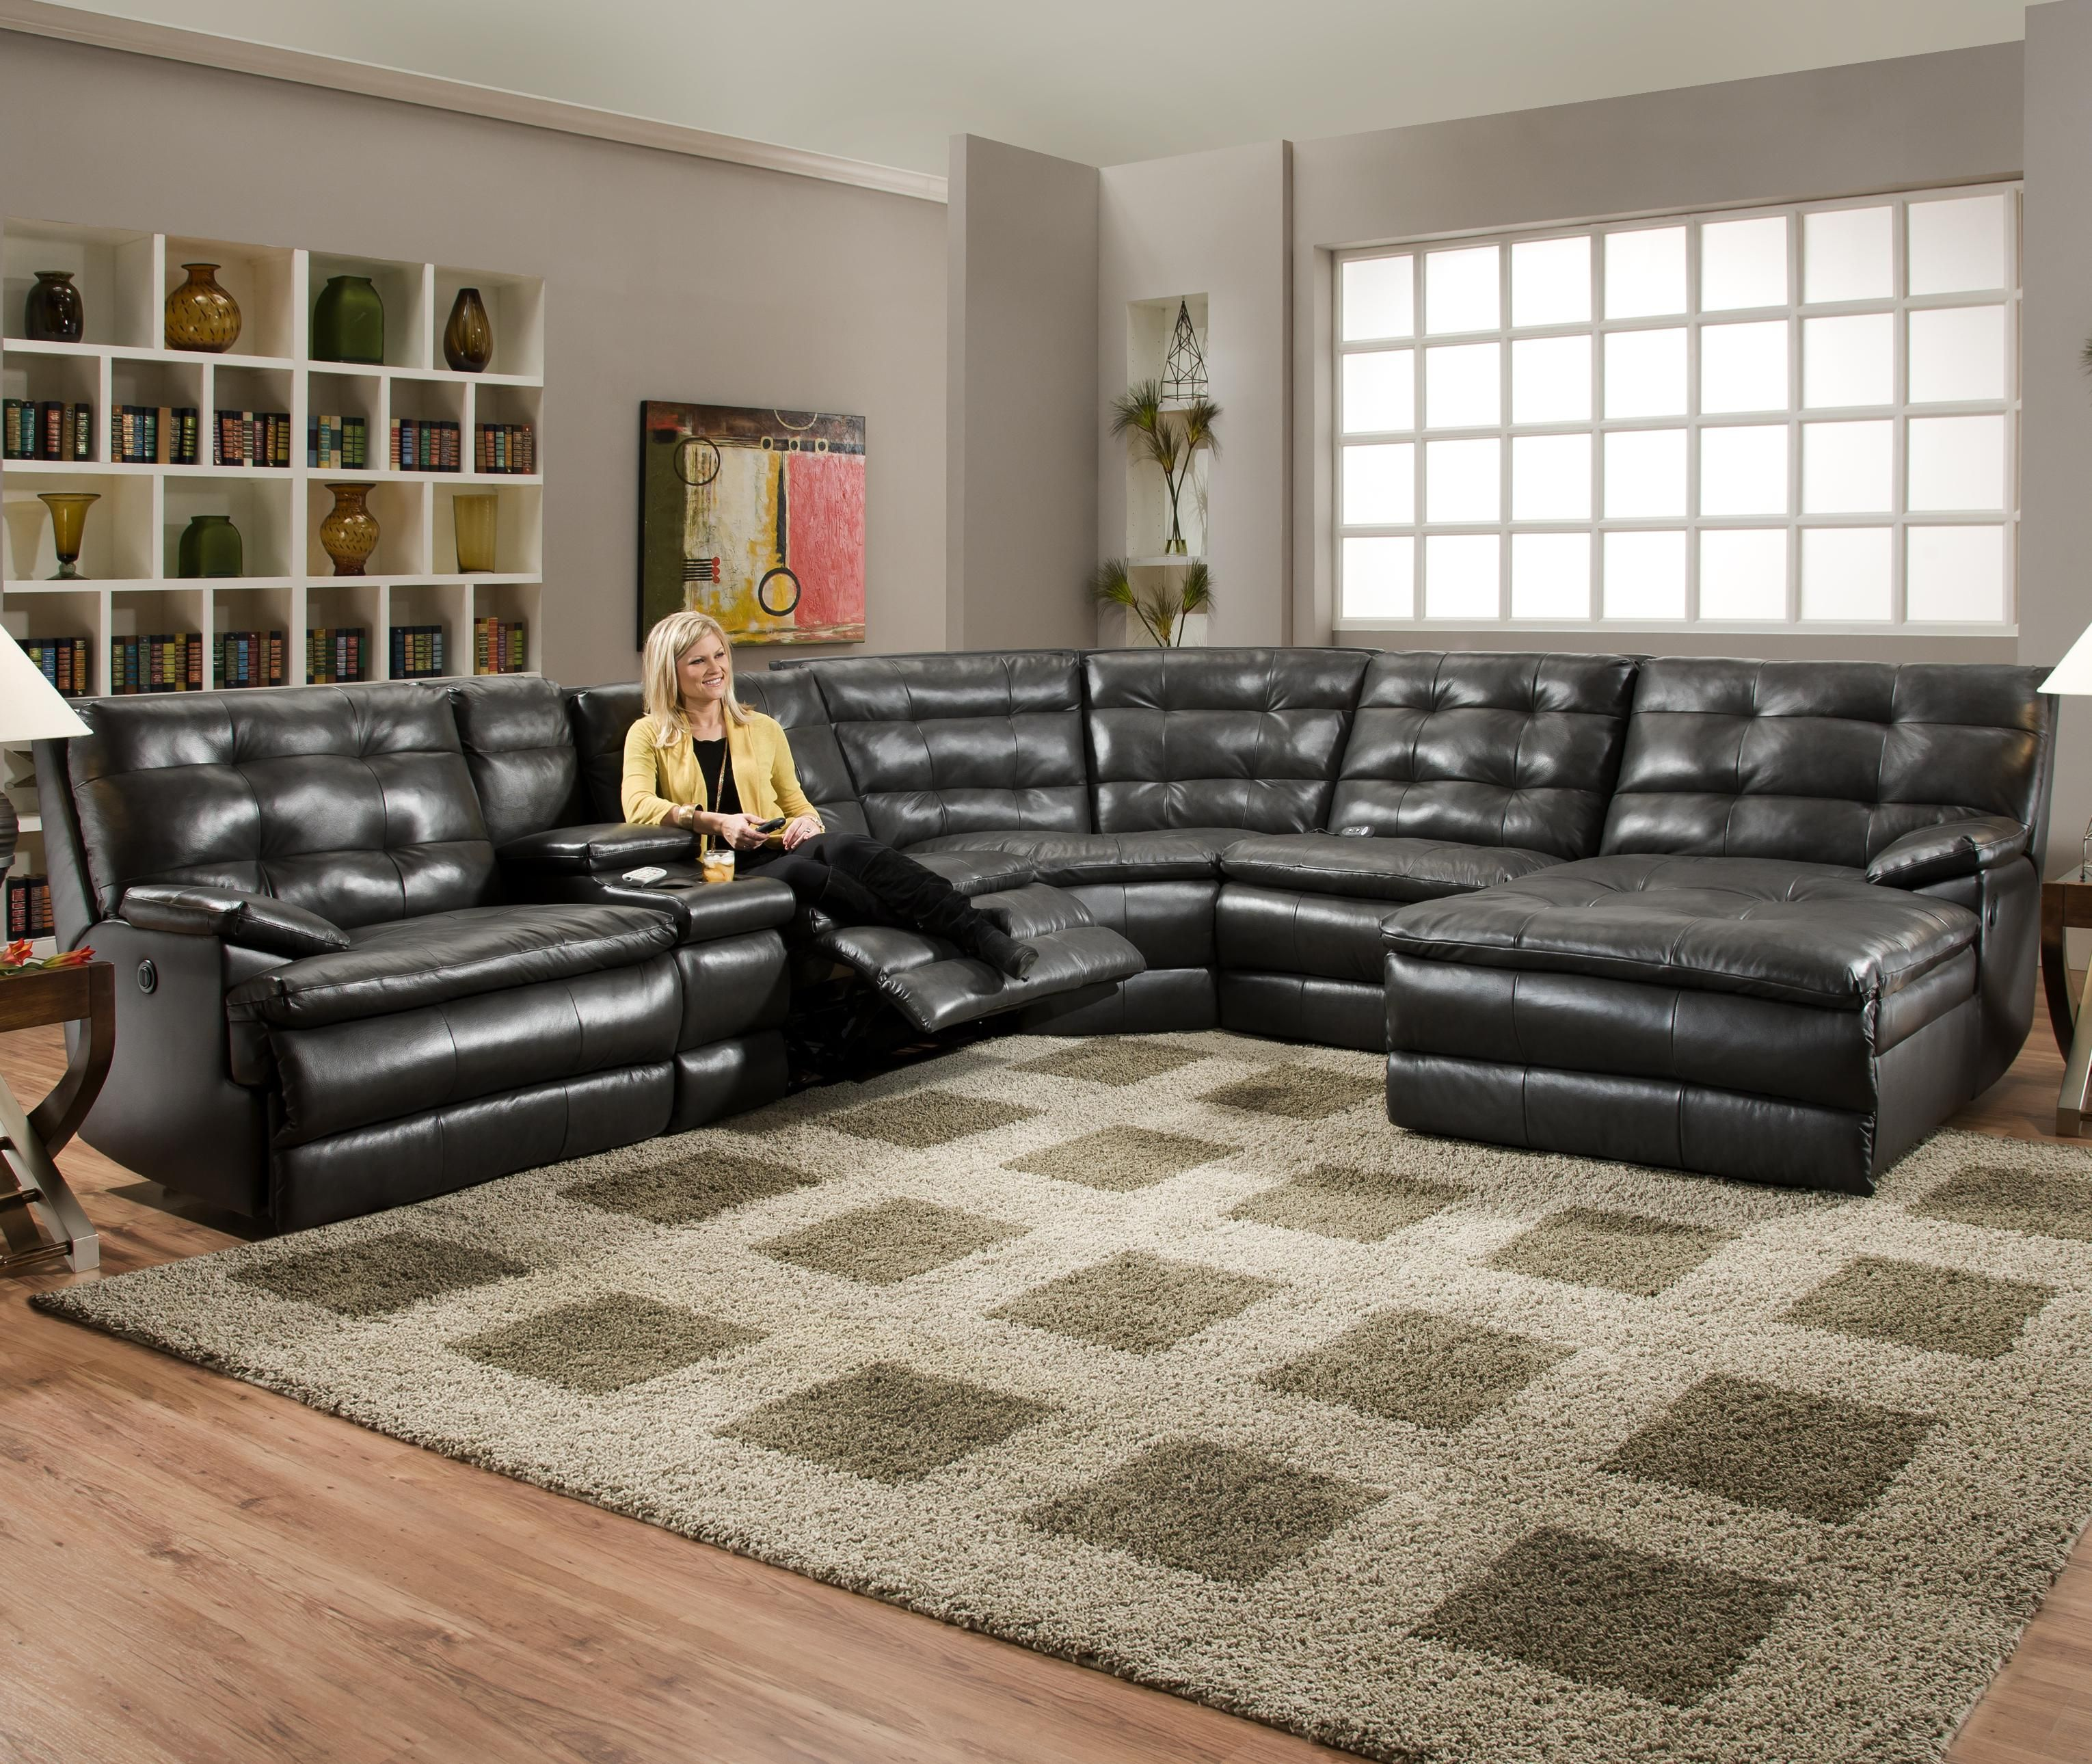 sofas ideas fresh sectional sofa for best cheap large and wall inspirational